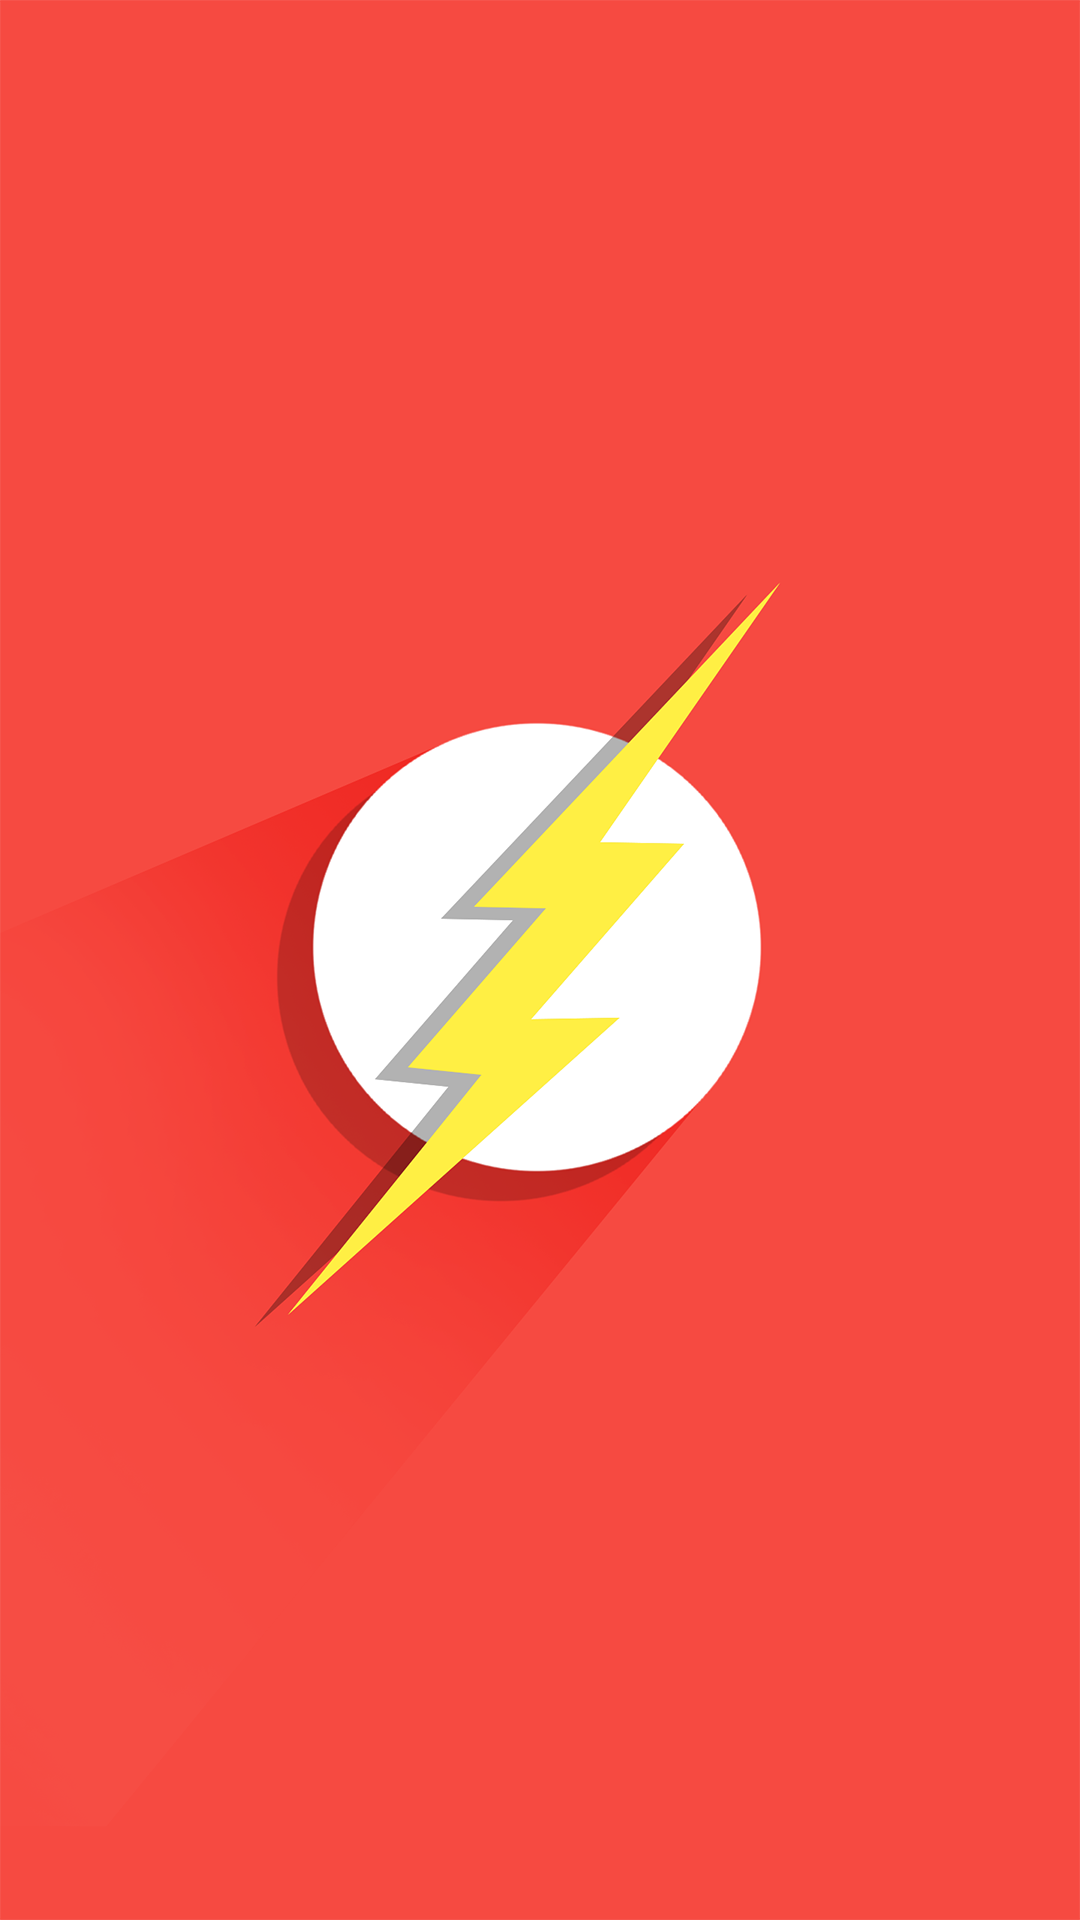 the flash iphone wallpaper - photo #4